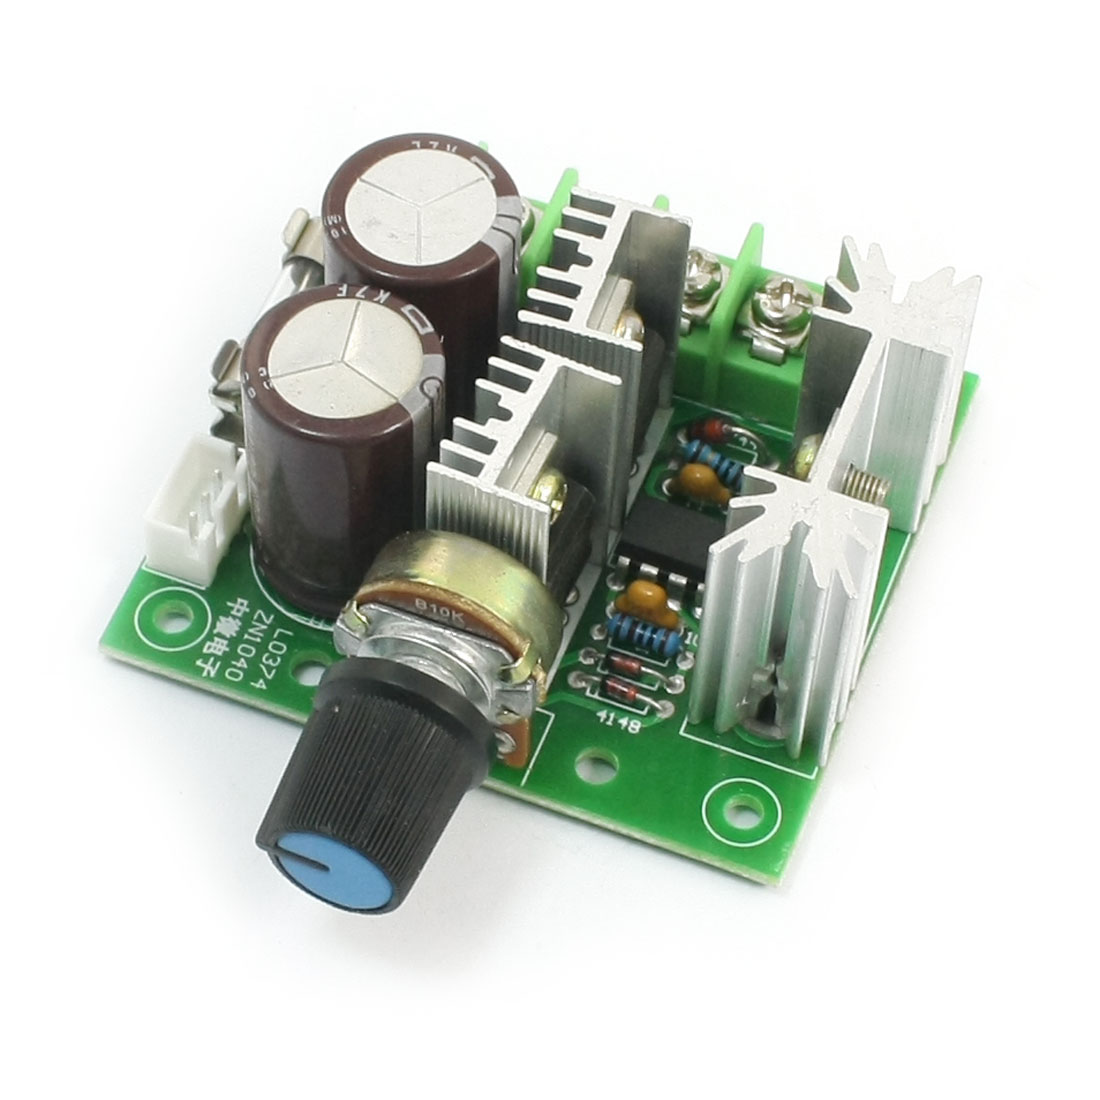 Rotary Adjustable Potentiometer Control Pulse Width Modulation PWM Motor Speed Controller Switch Governor DC12V-40V 10A 400W